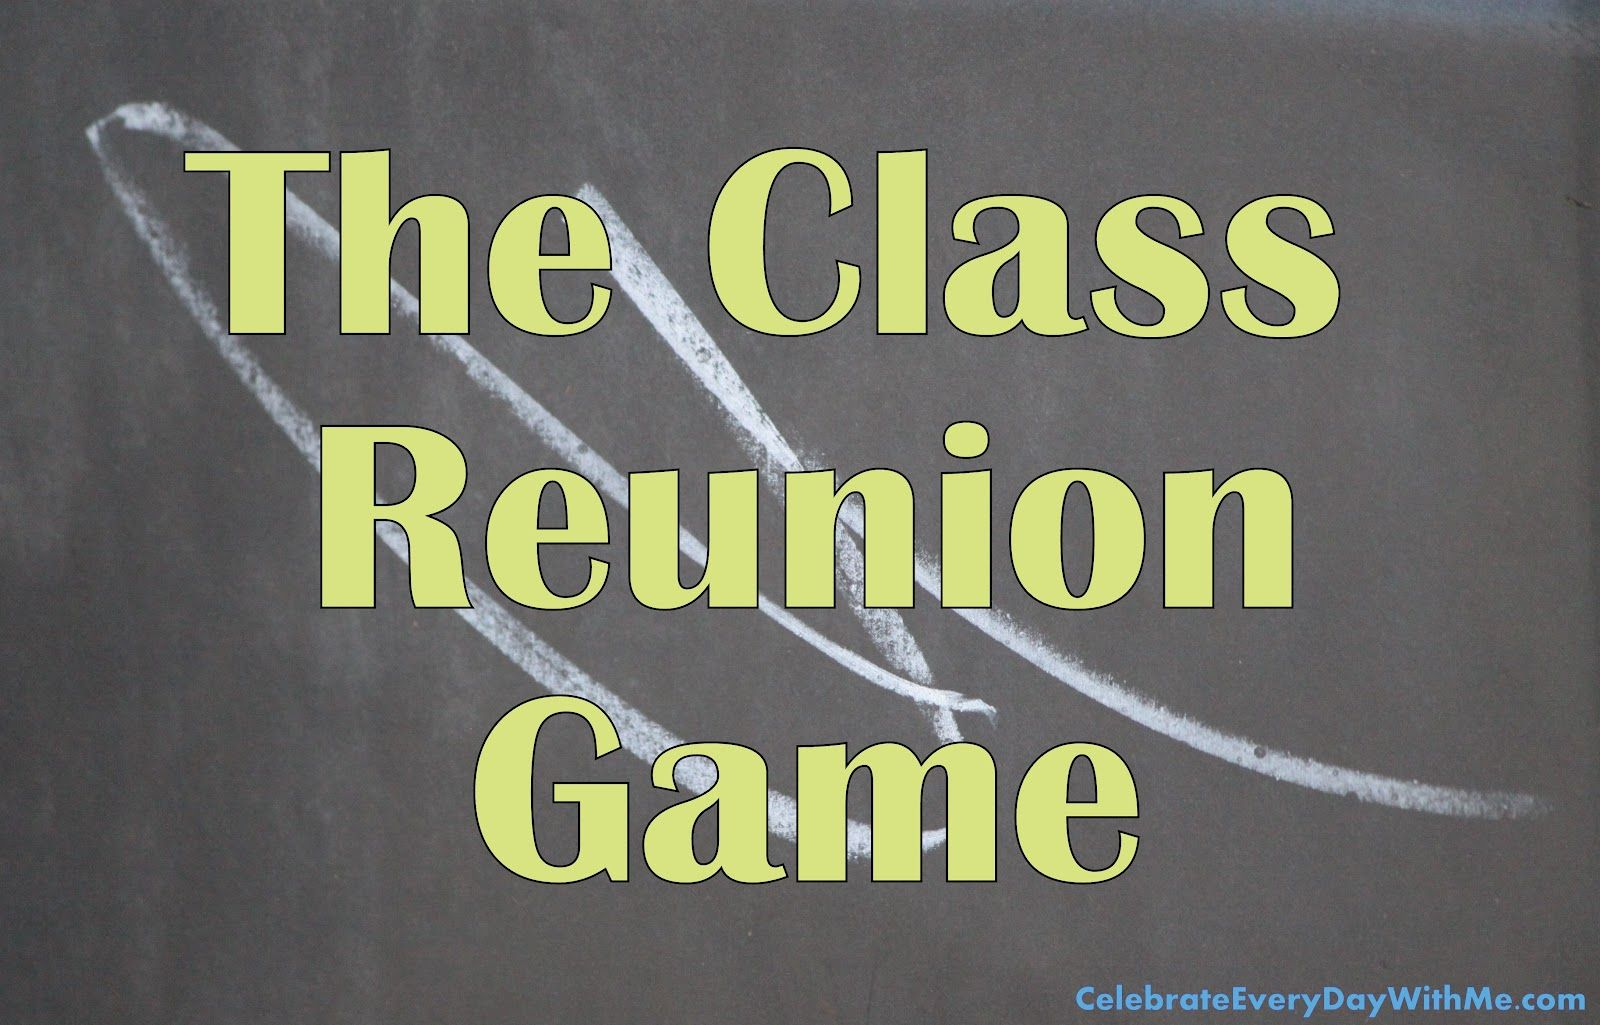 Class Reunion Memorial Table Ideas seed plantable heart memorial cards 1000 Images About 30 Year Class Reunion On Pinterest Reunions Old Trophies And Party Favor Bags